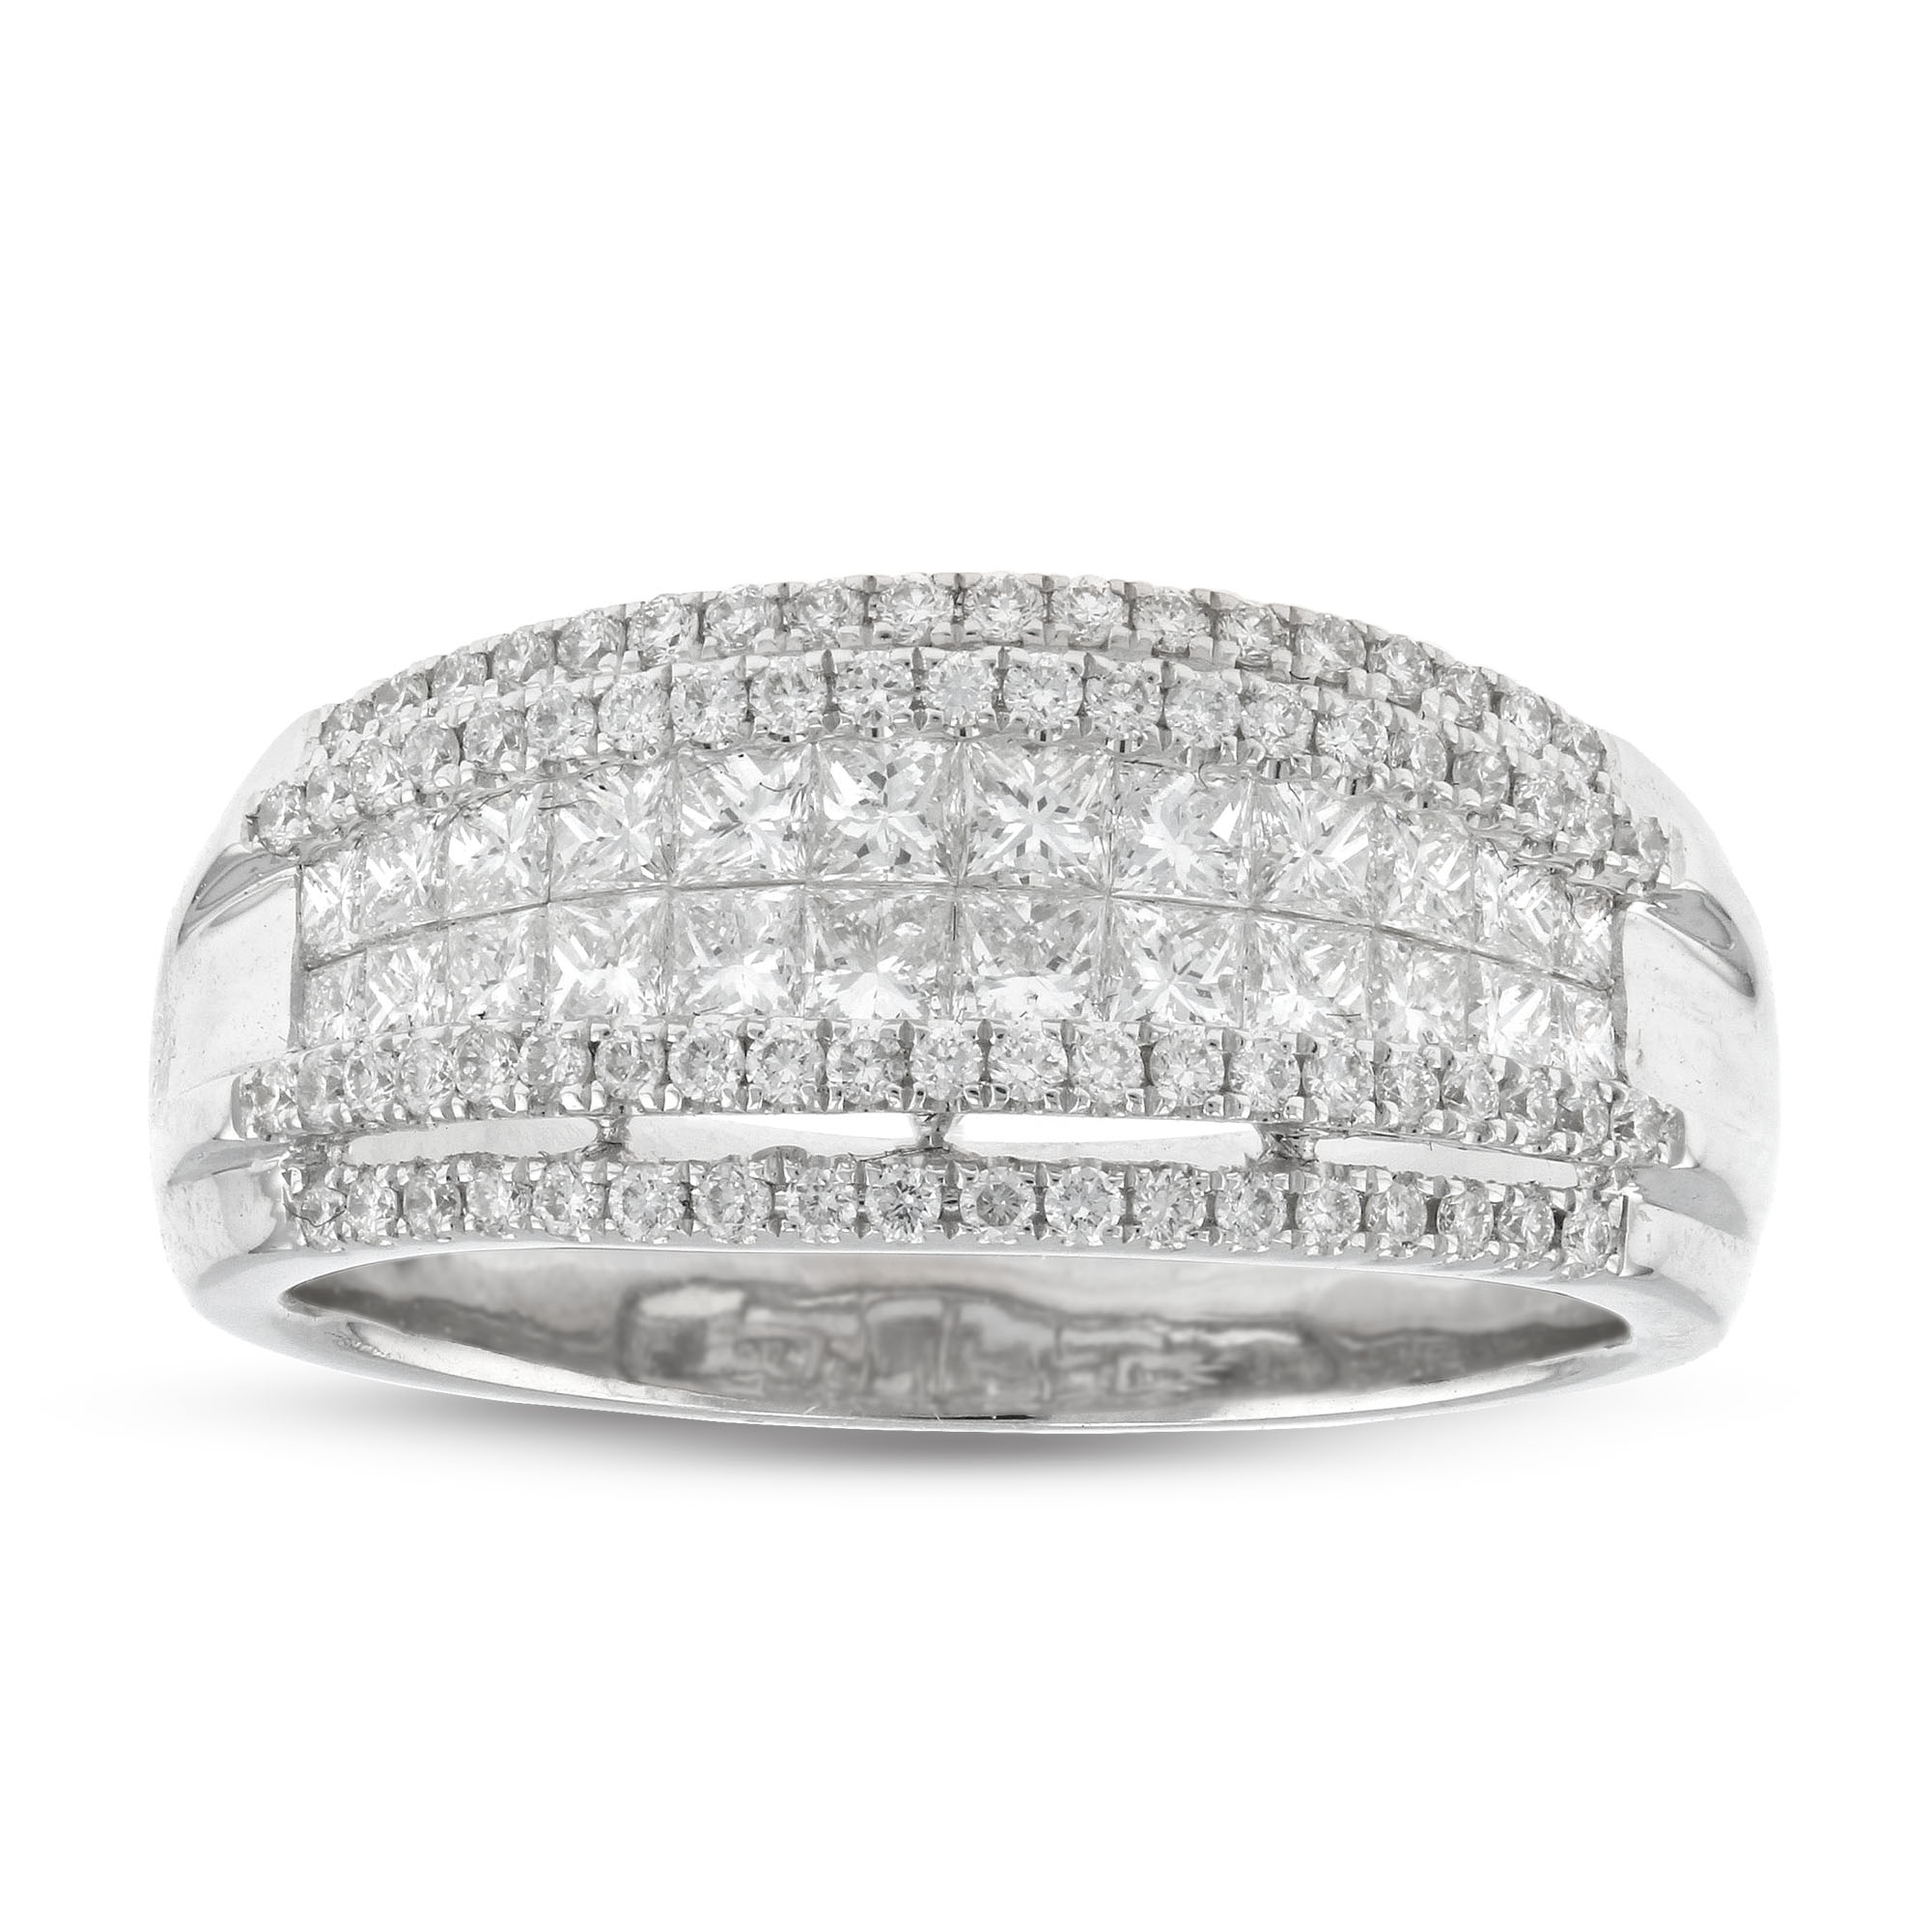 View 1.07ctw Fashion Band in 18k White Gold